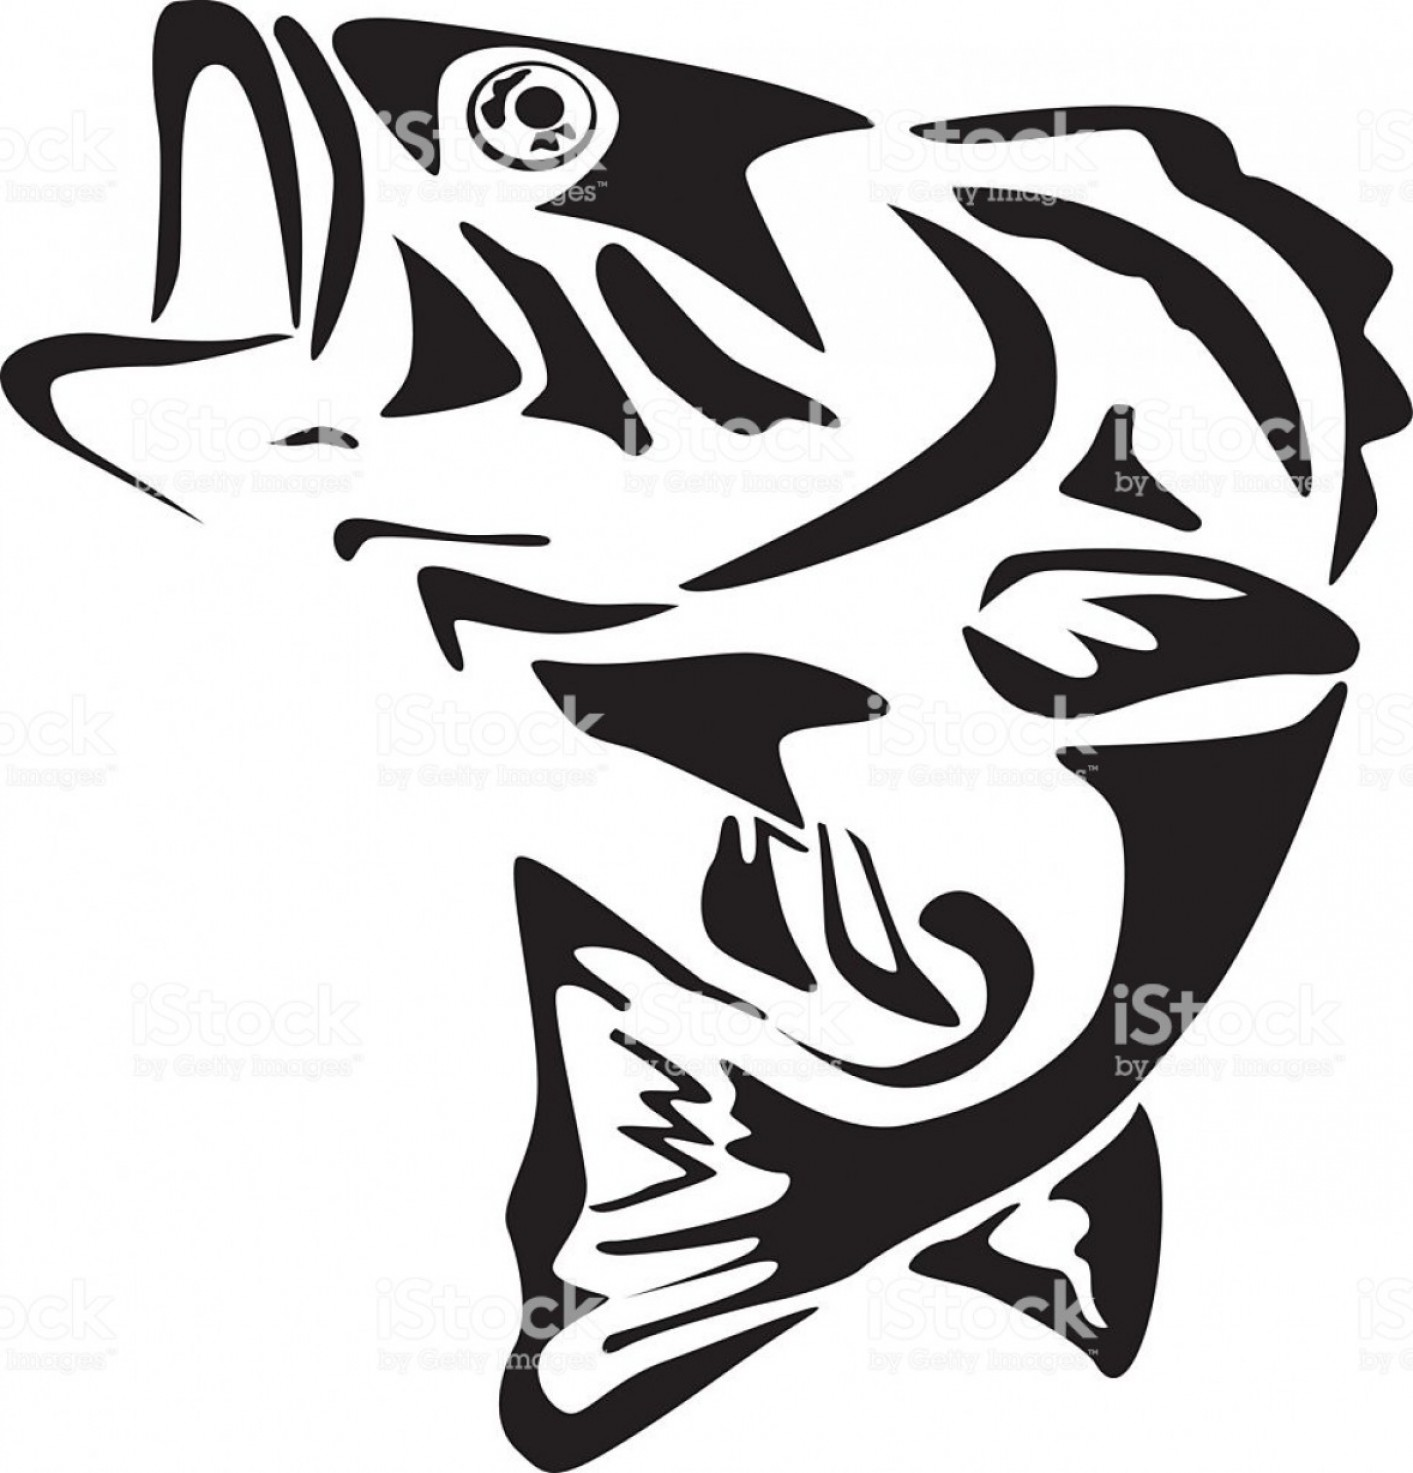 Largemouth Bass Silhouette Vector: Bass Fishing Clipart Black And White